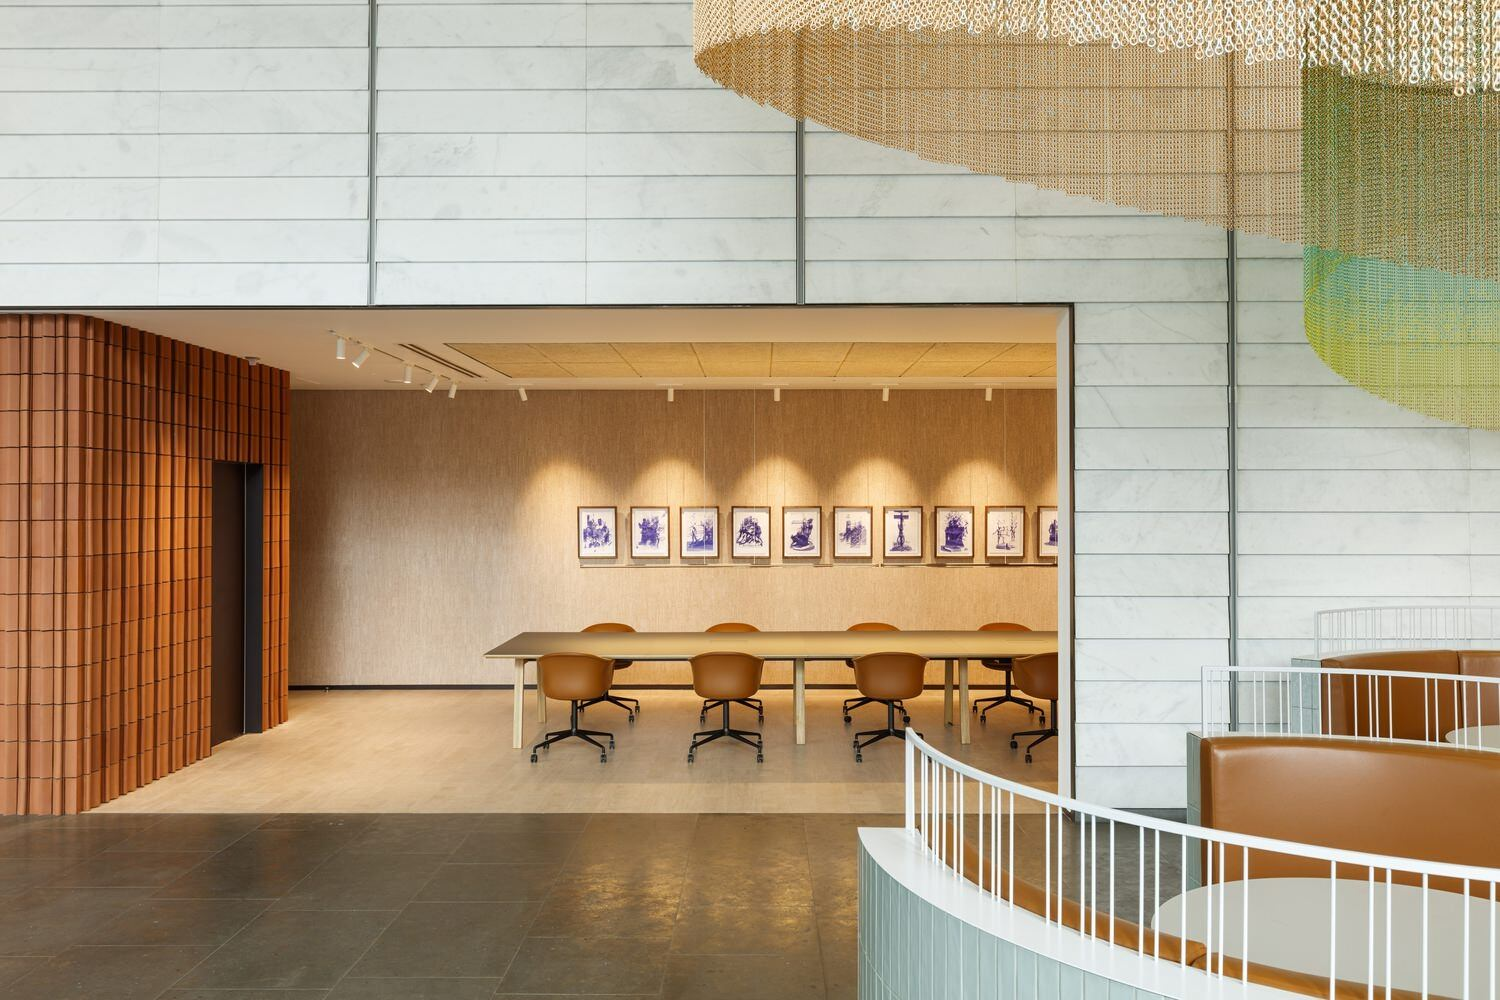 View of a conference room made of wood.